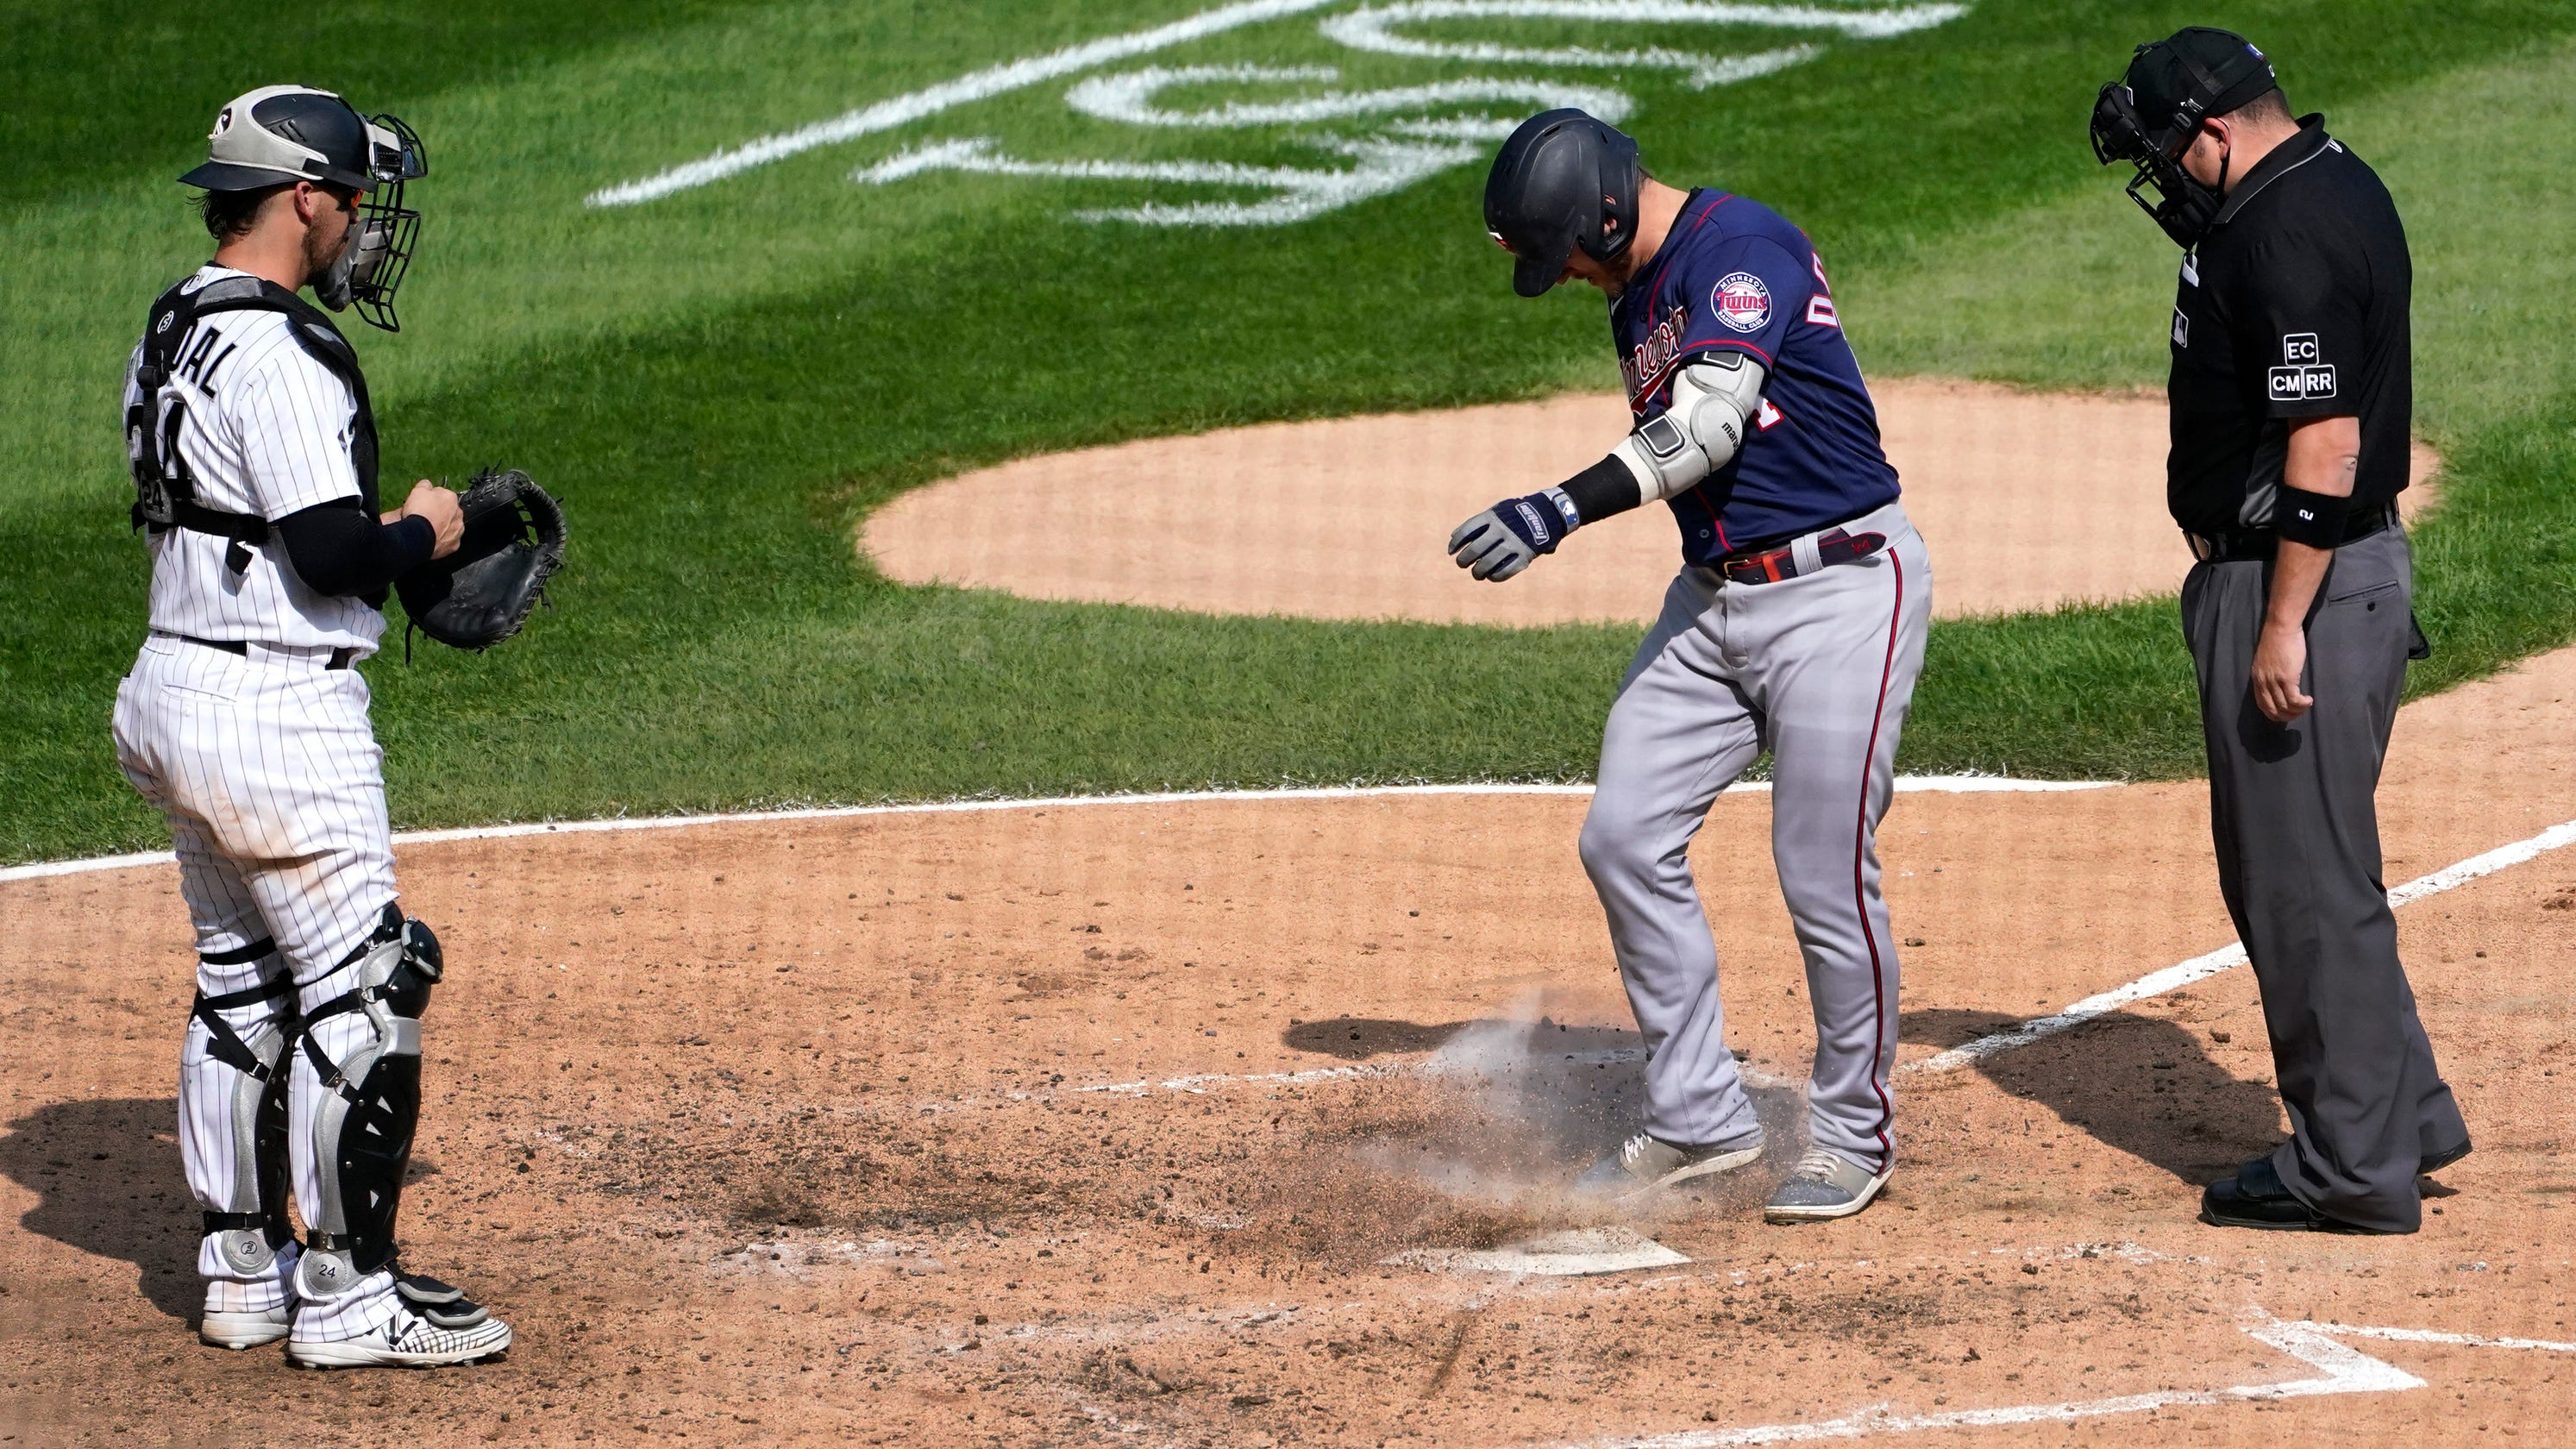 Minnesota Twins' Josh Donaldson ejected after hitting home run against White Sox